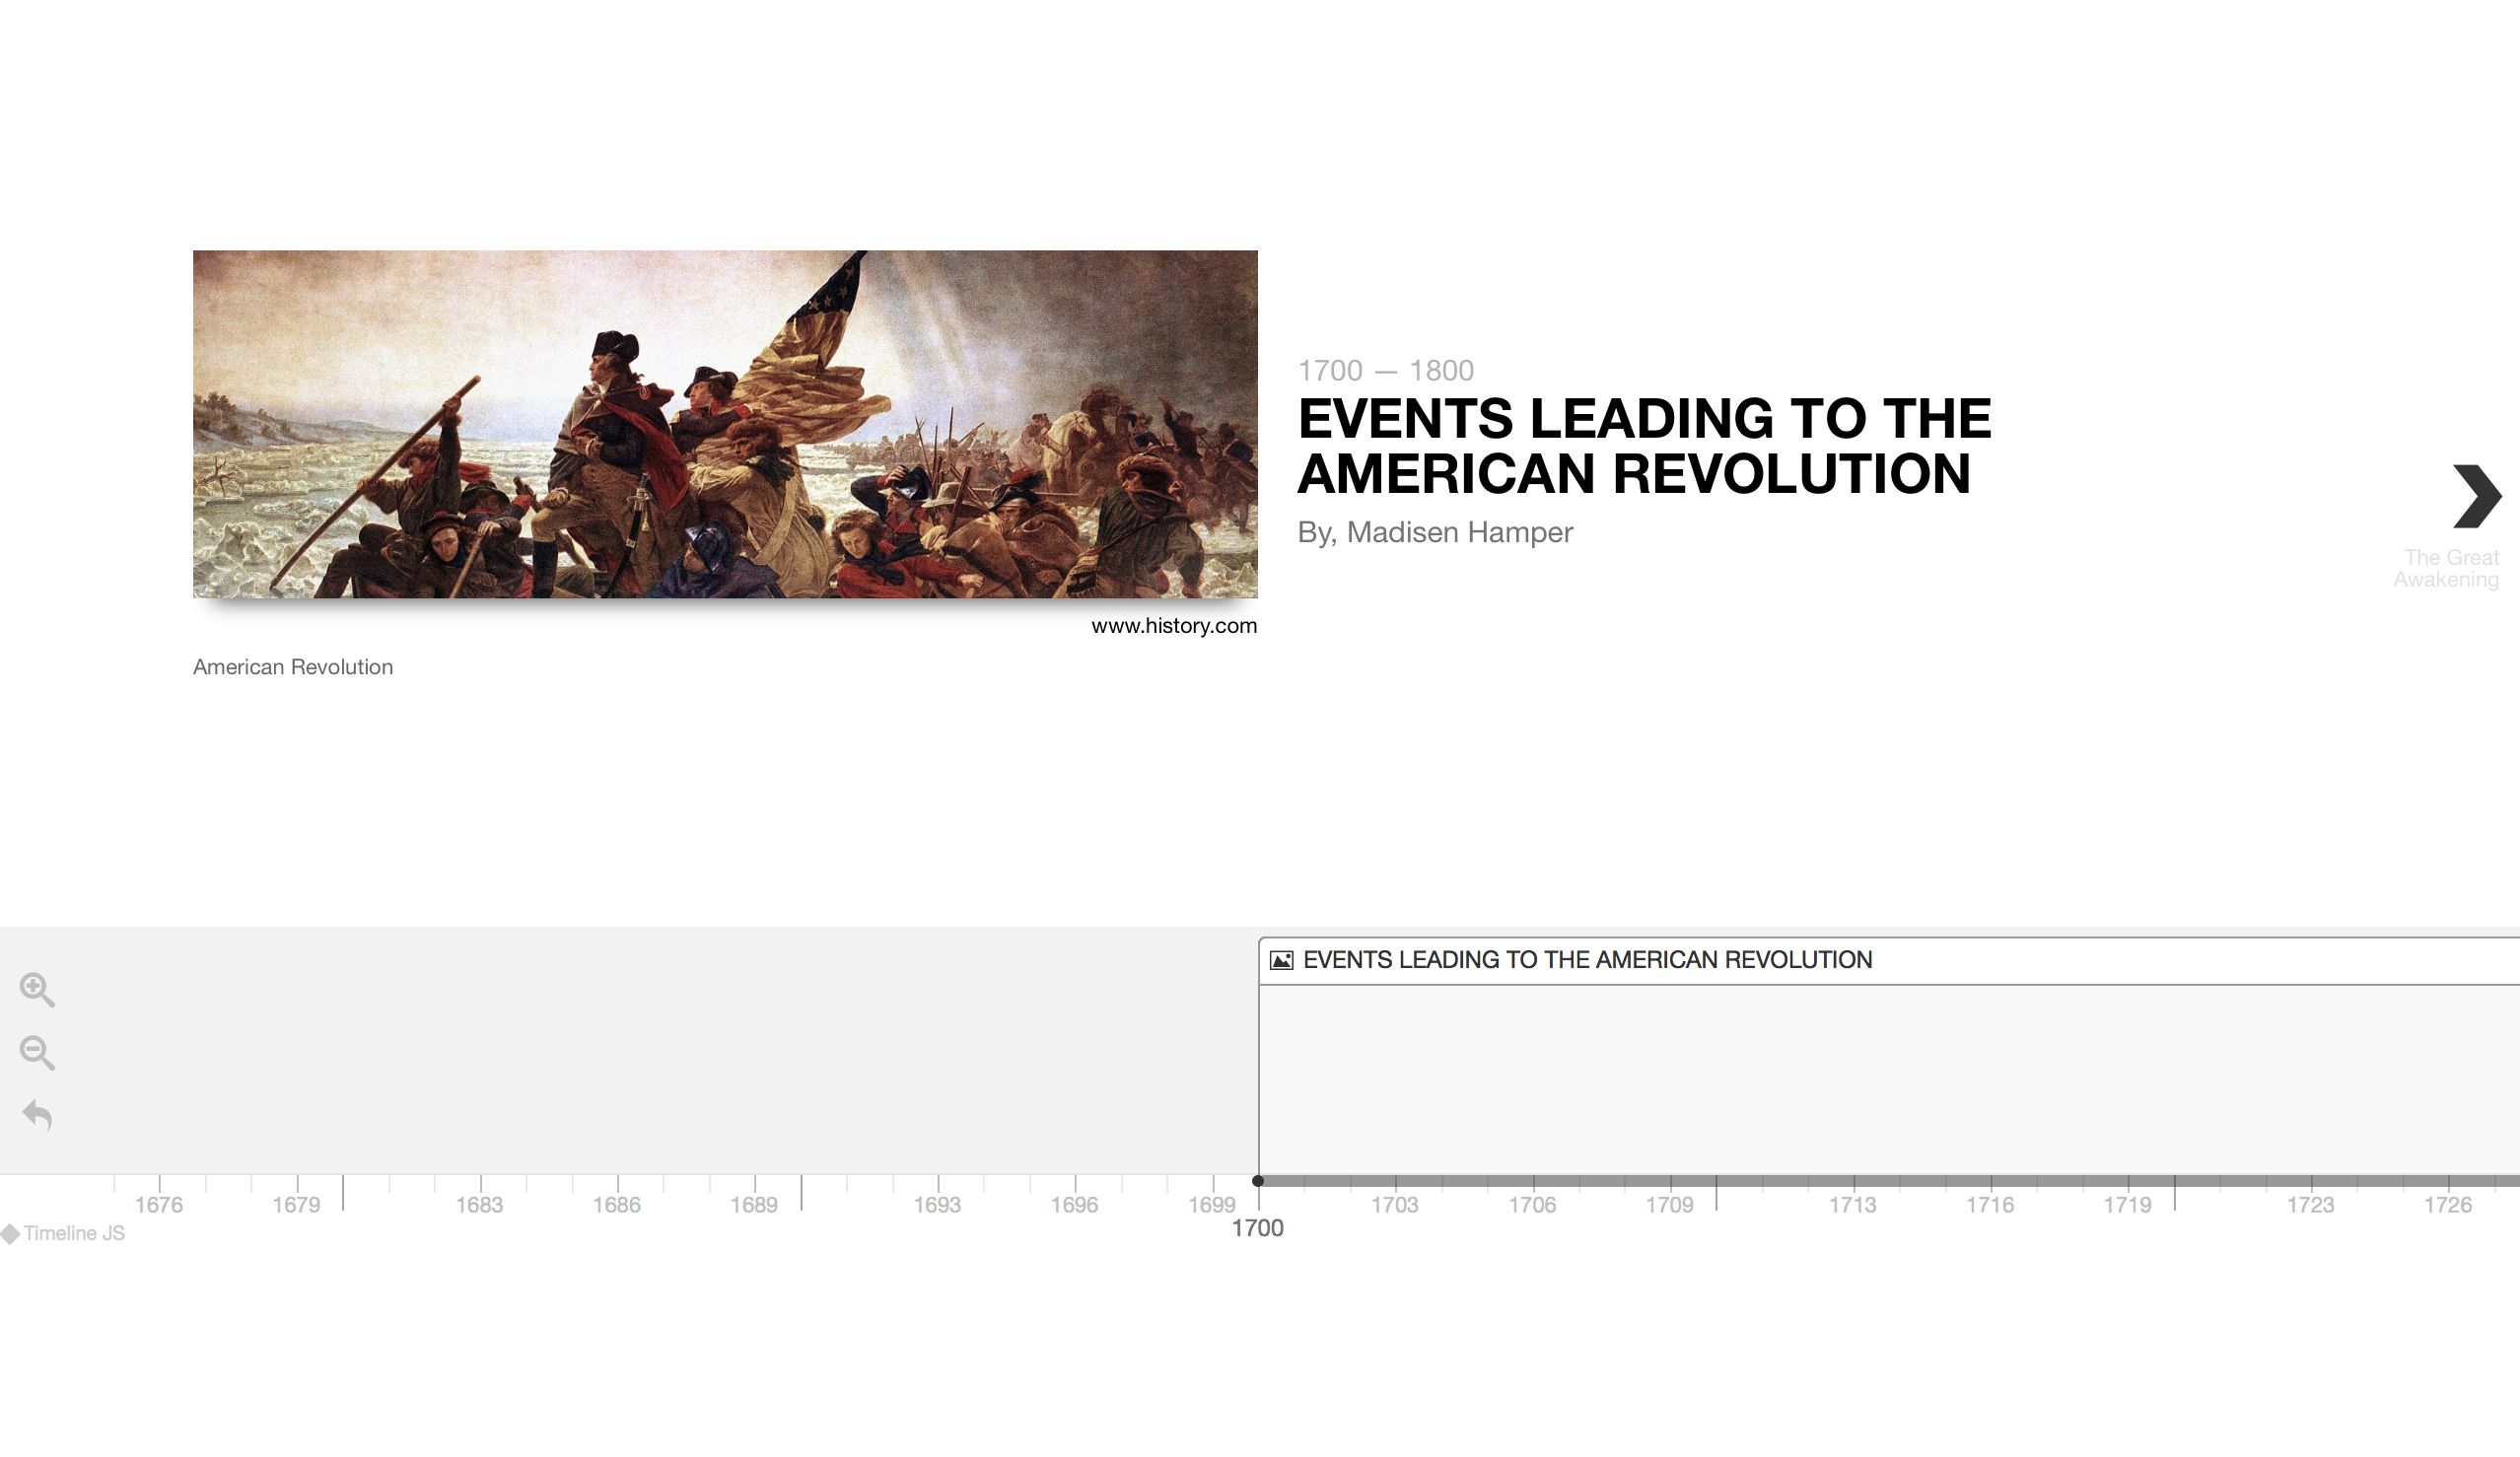 Timeline of the events leading to the American Revolution.